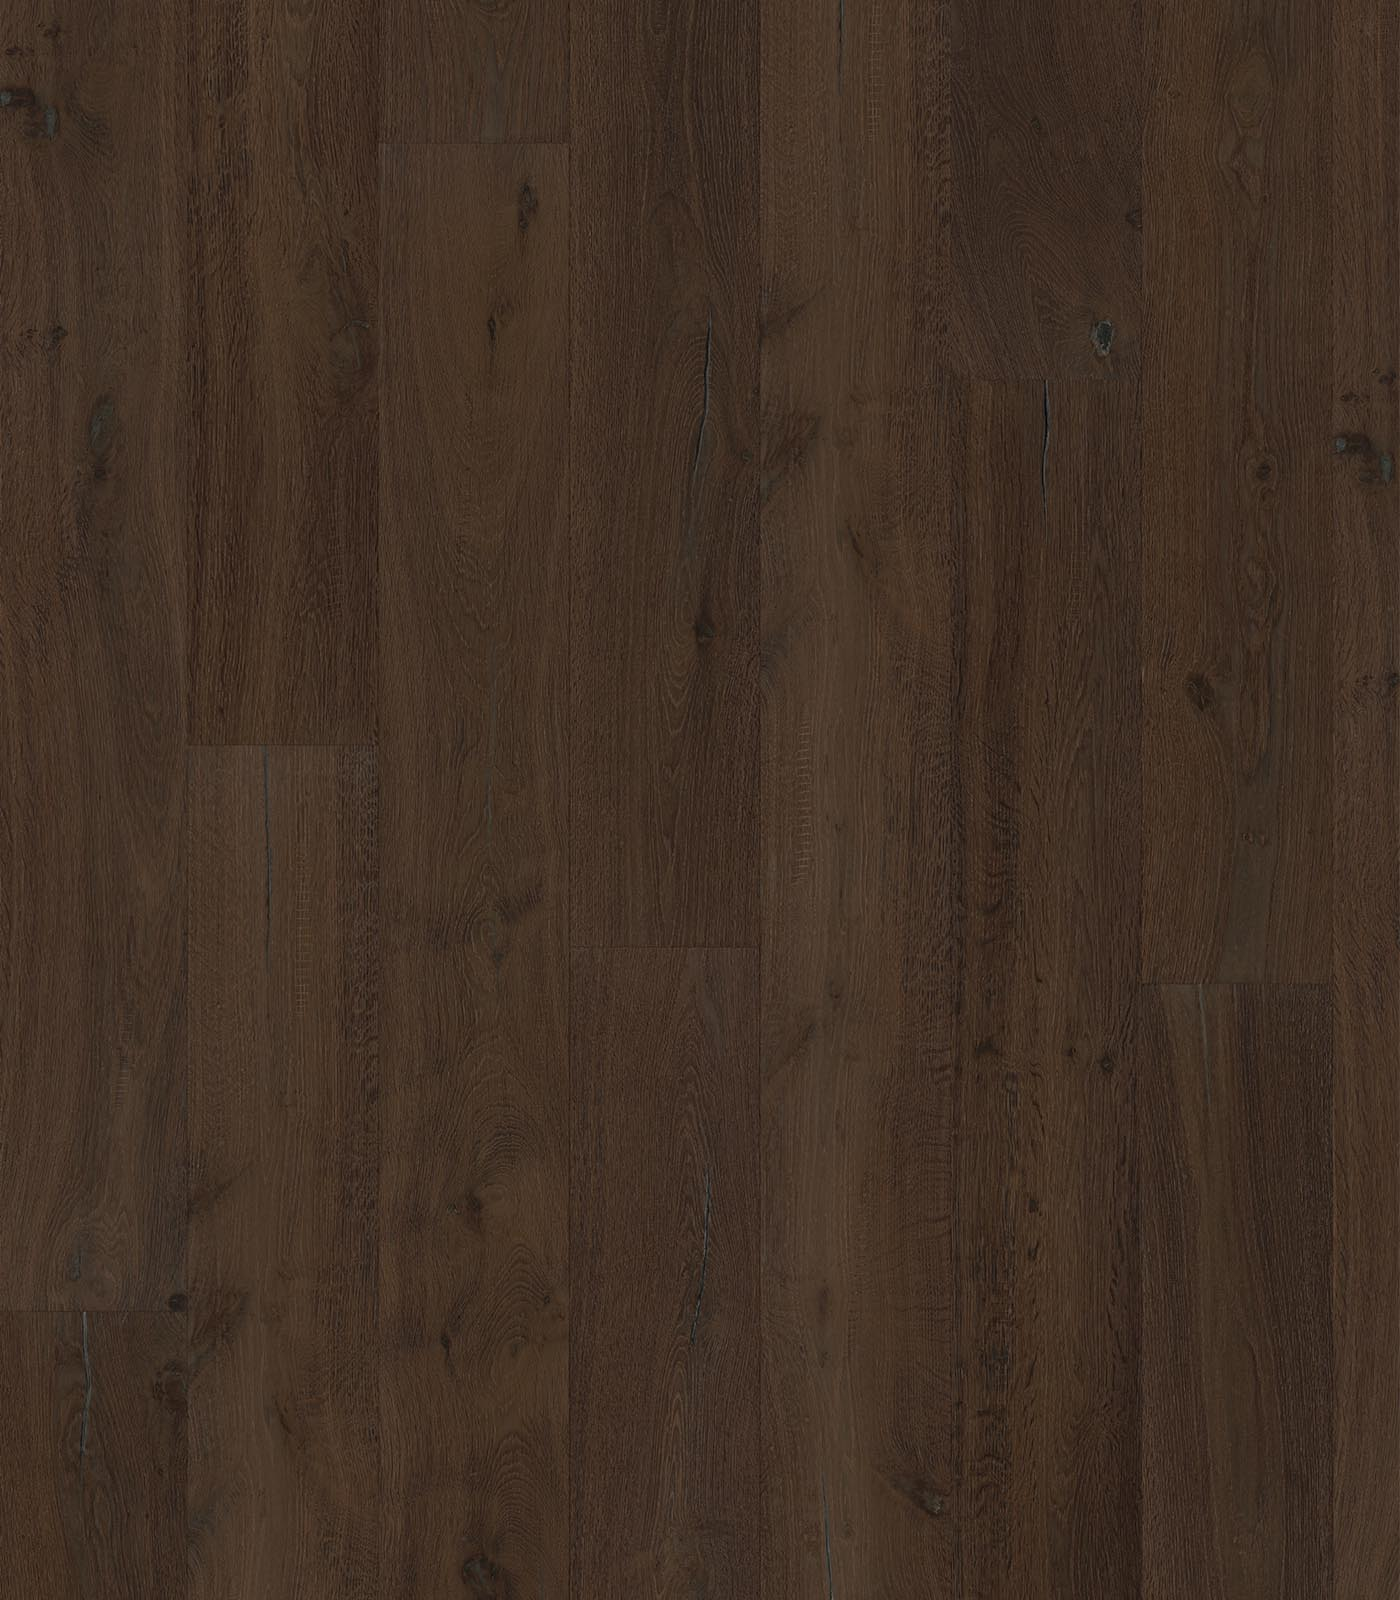 Mount Fuji-Antique Collection-European Oak floors-flat